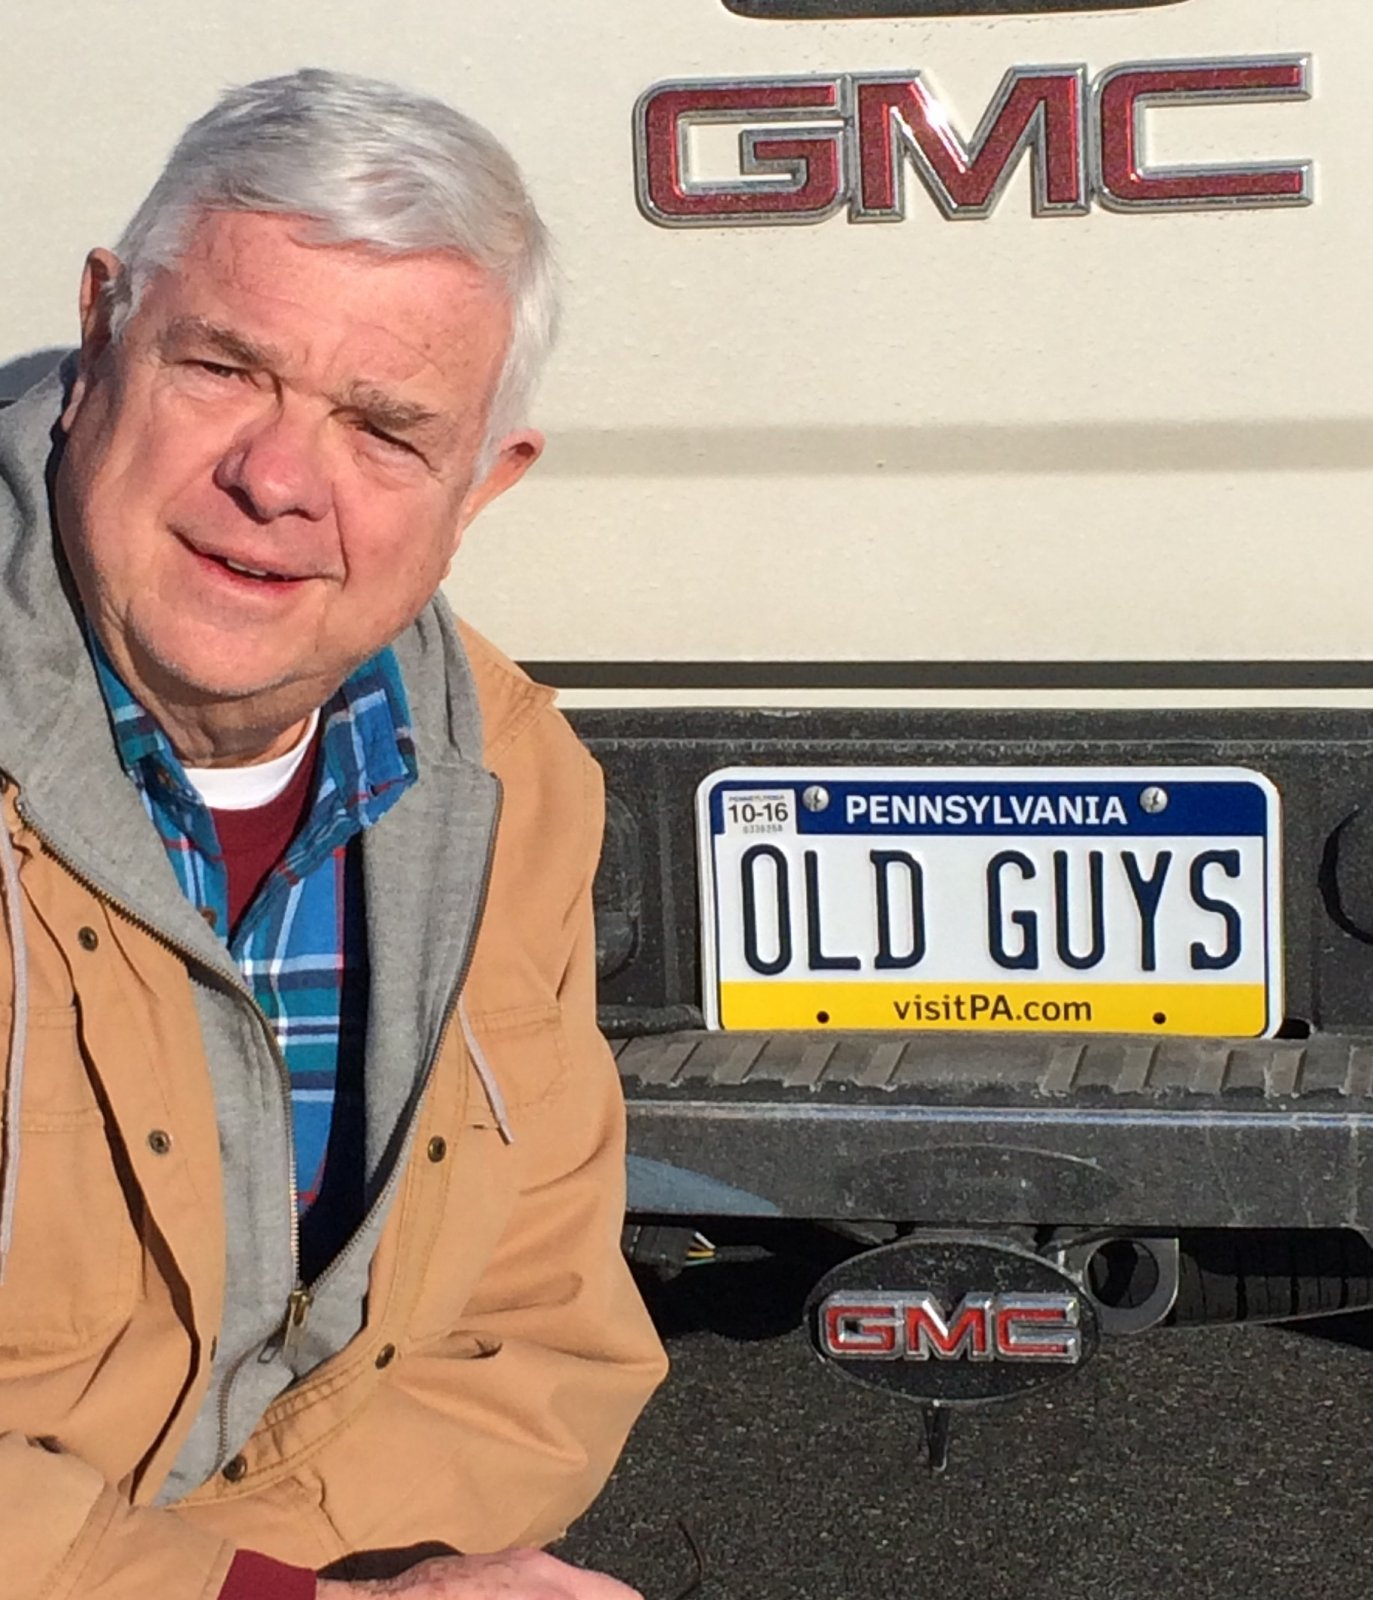 Click image for larger version  Name:old guys.jpg Views:38 Size:305.9 KB ID:120509